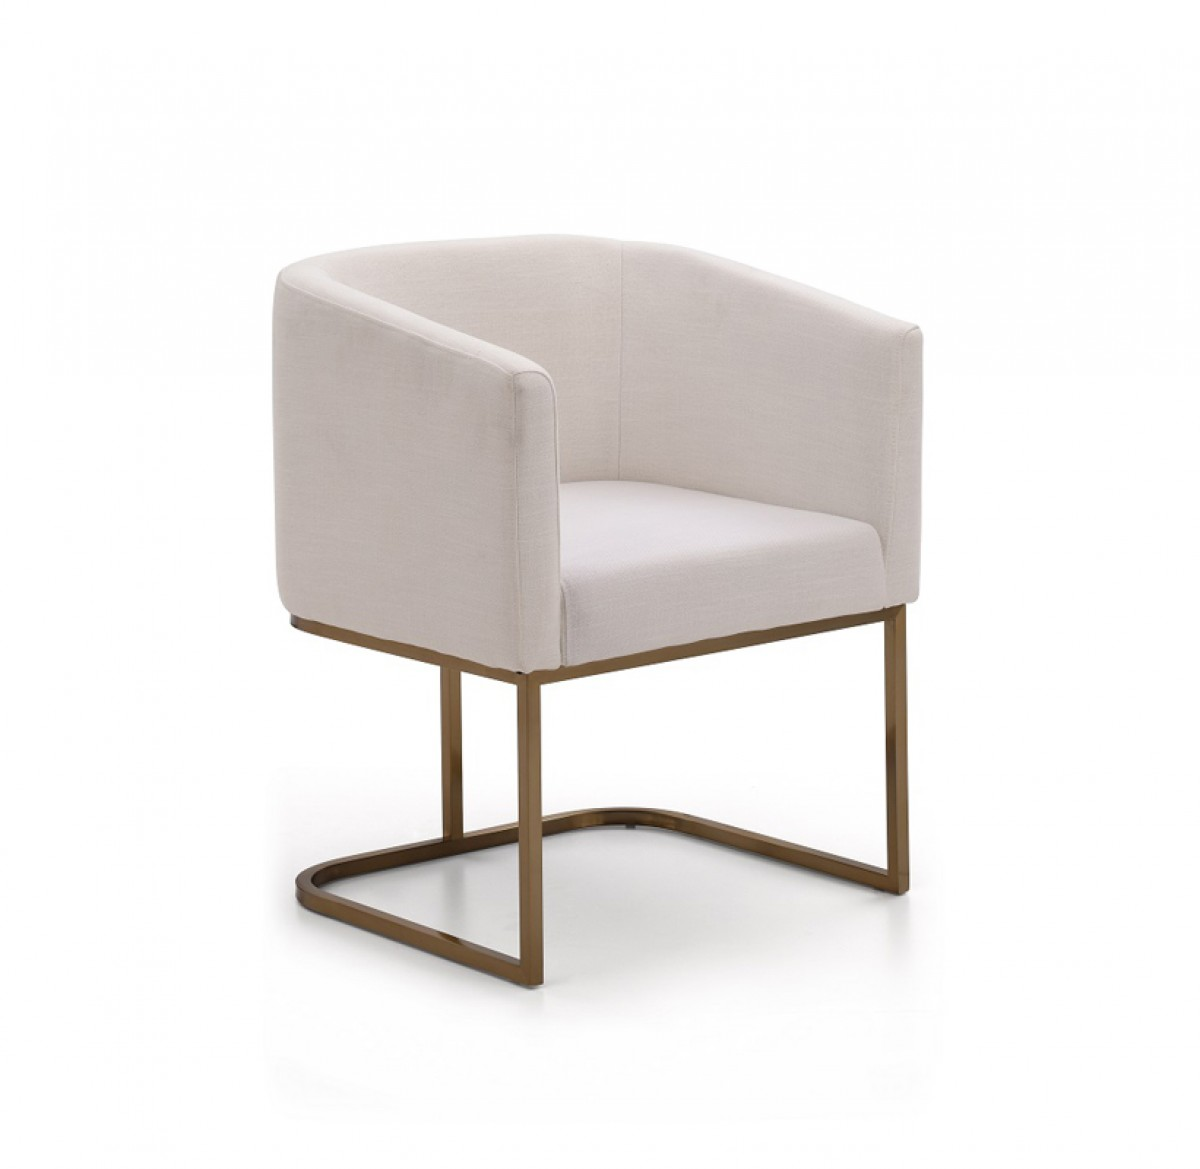 designer dining chairs diy room chair upholstery modrest yukon modern white fabric and antique brass